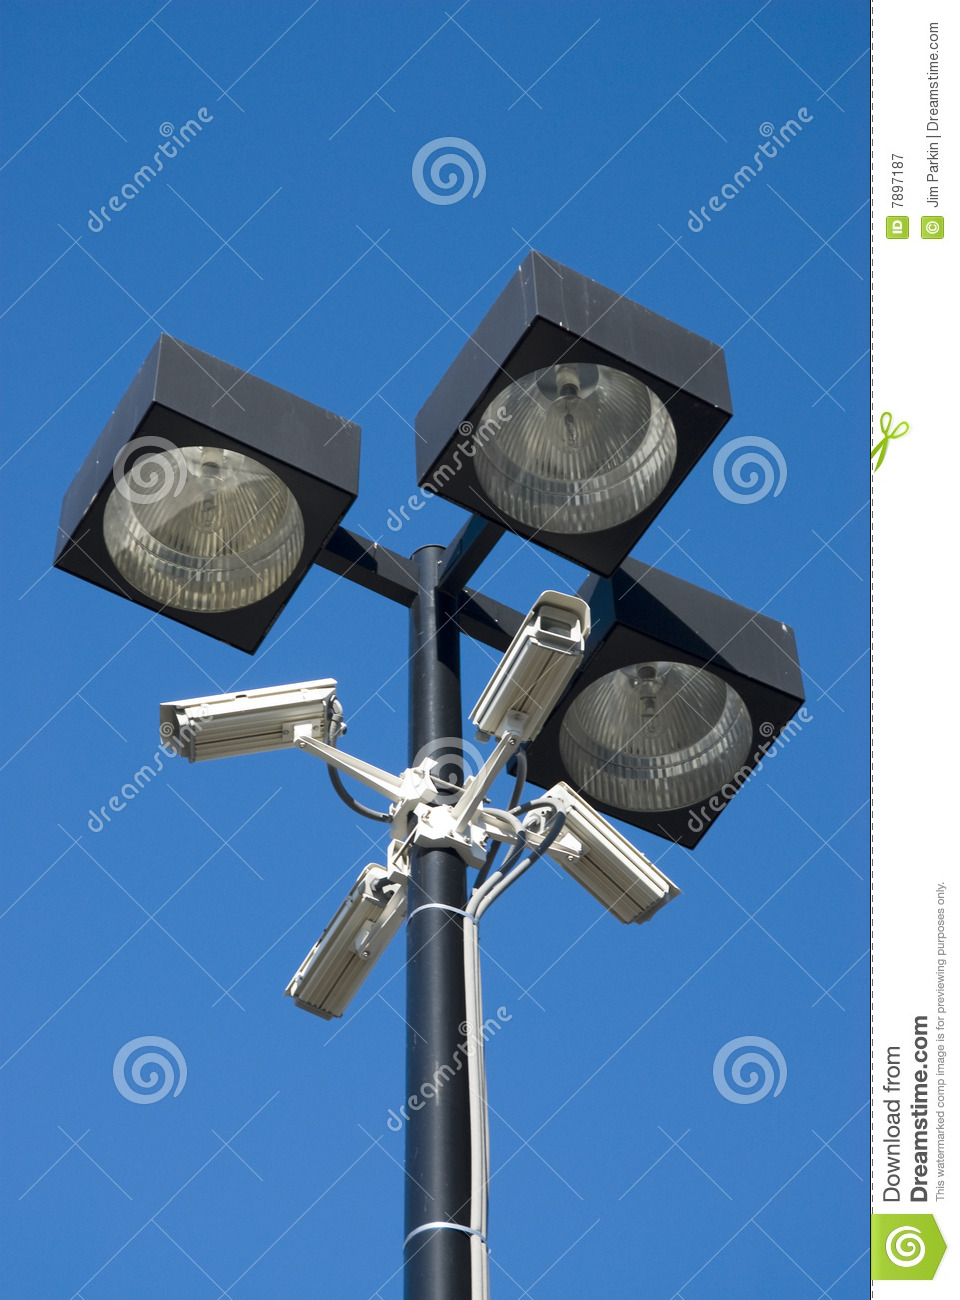 Download Surveillance cameras stock image. Image of watching, observe - 7897187